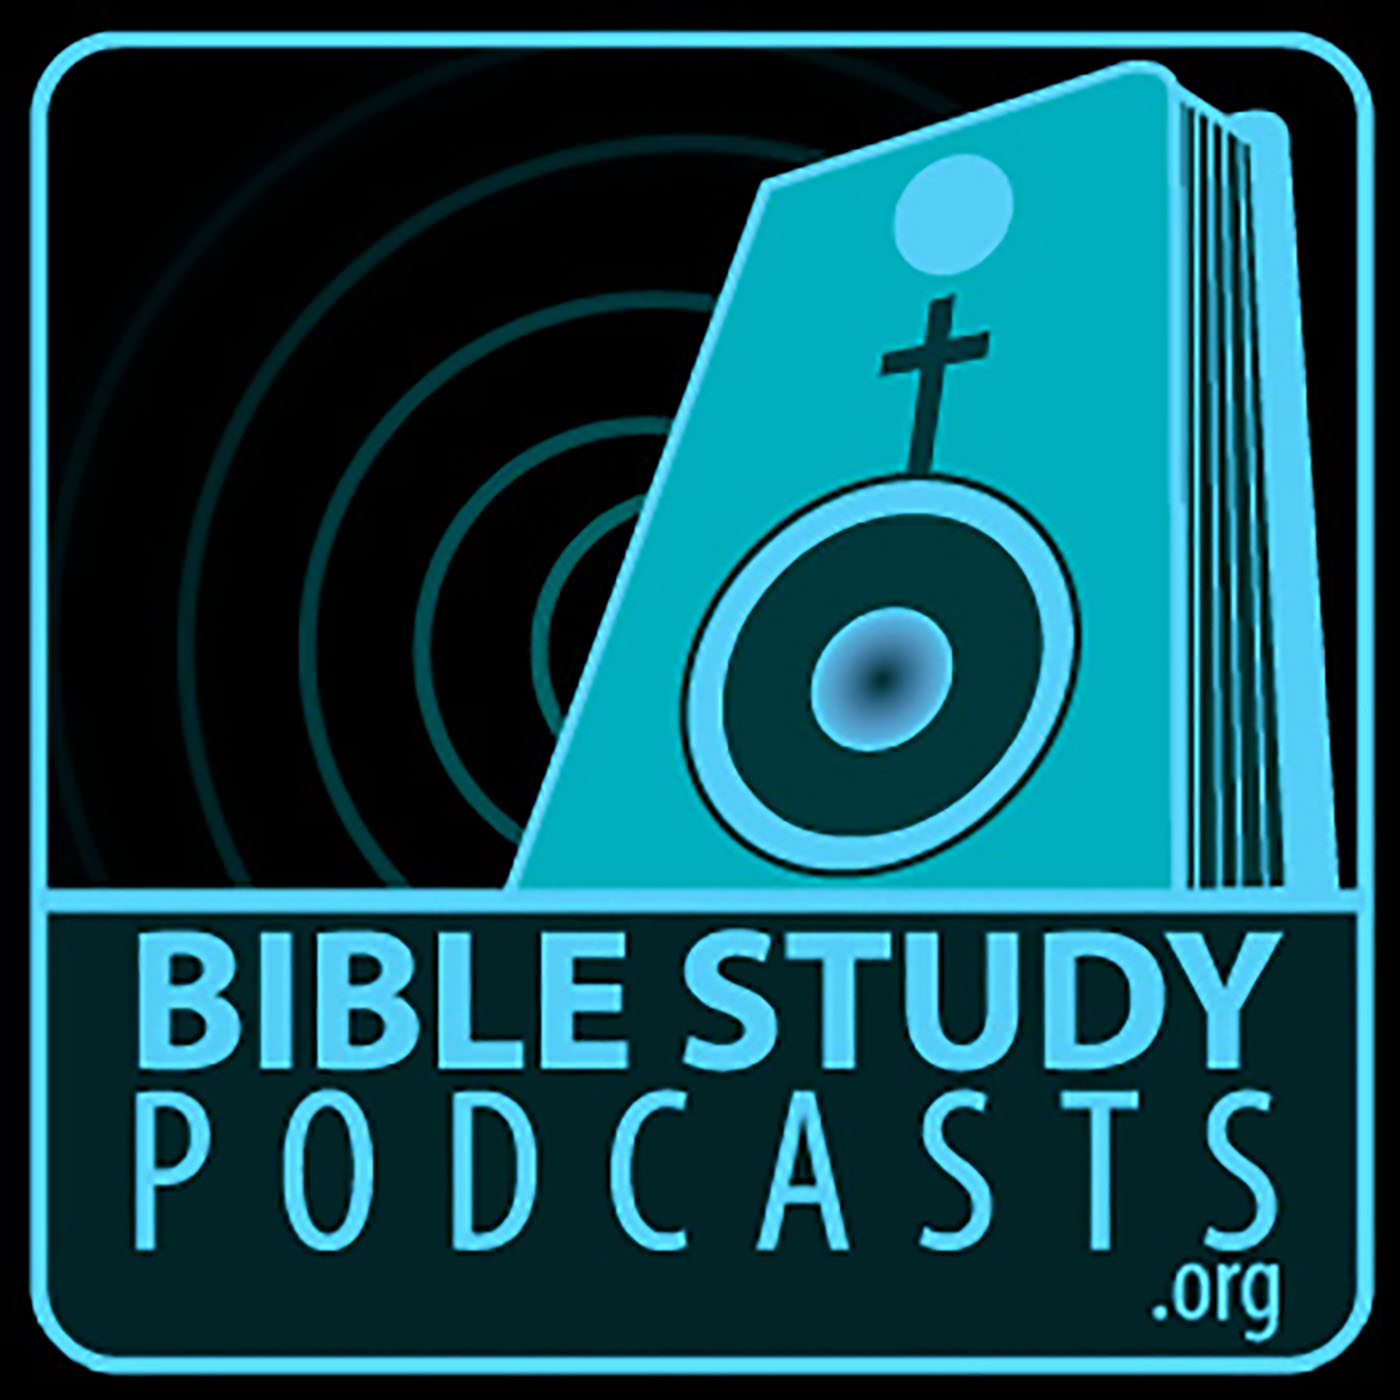 Bible Study Podcasts » Podcast Feed